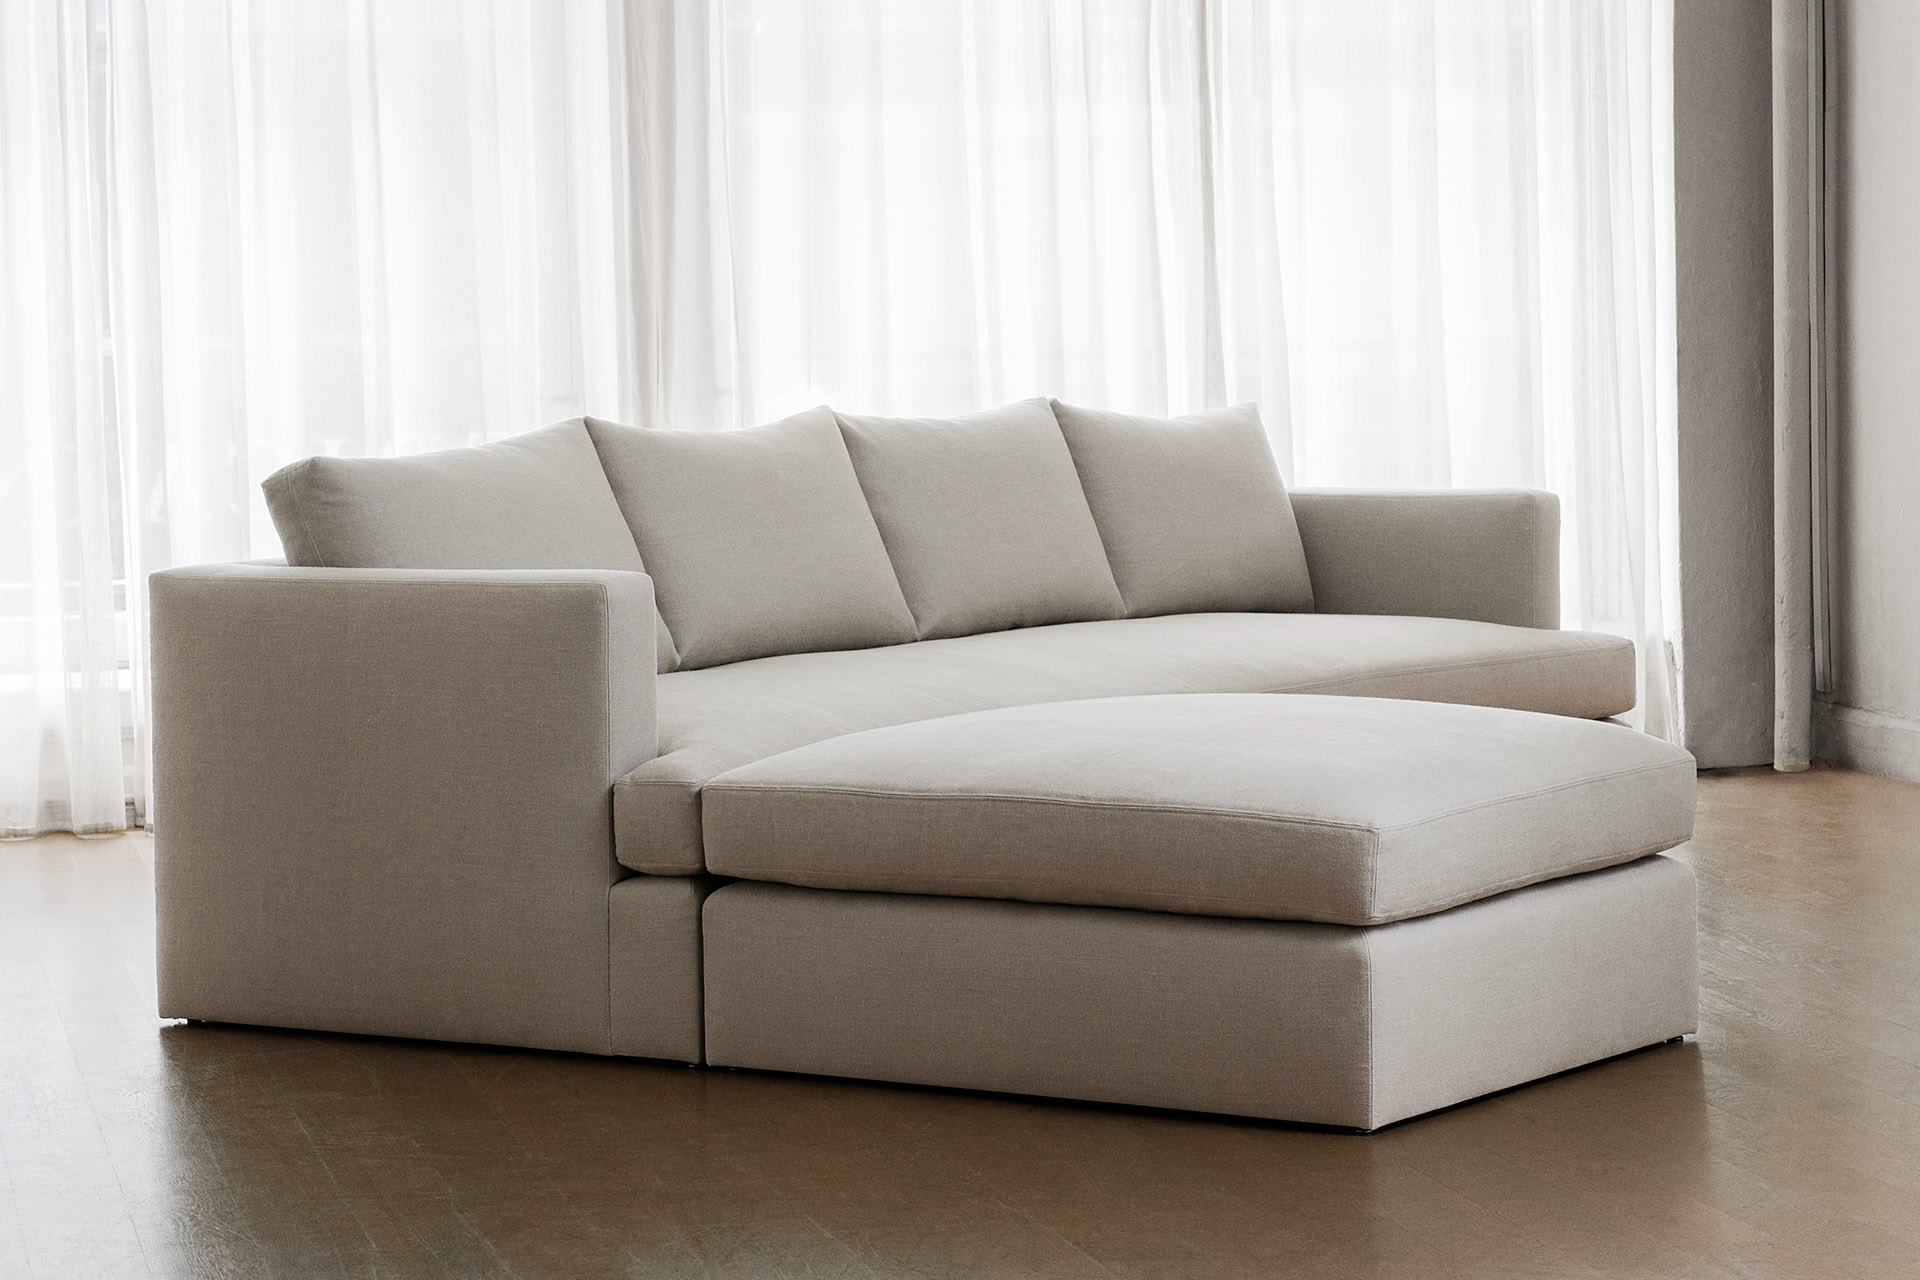 Preferred Ottoman Sofas – Home And Textiles For Sofas With Ottoman (View 2 of 15)